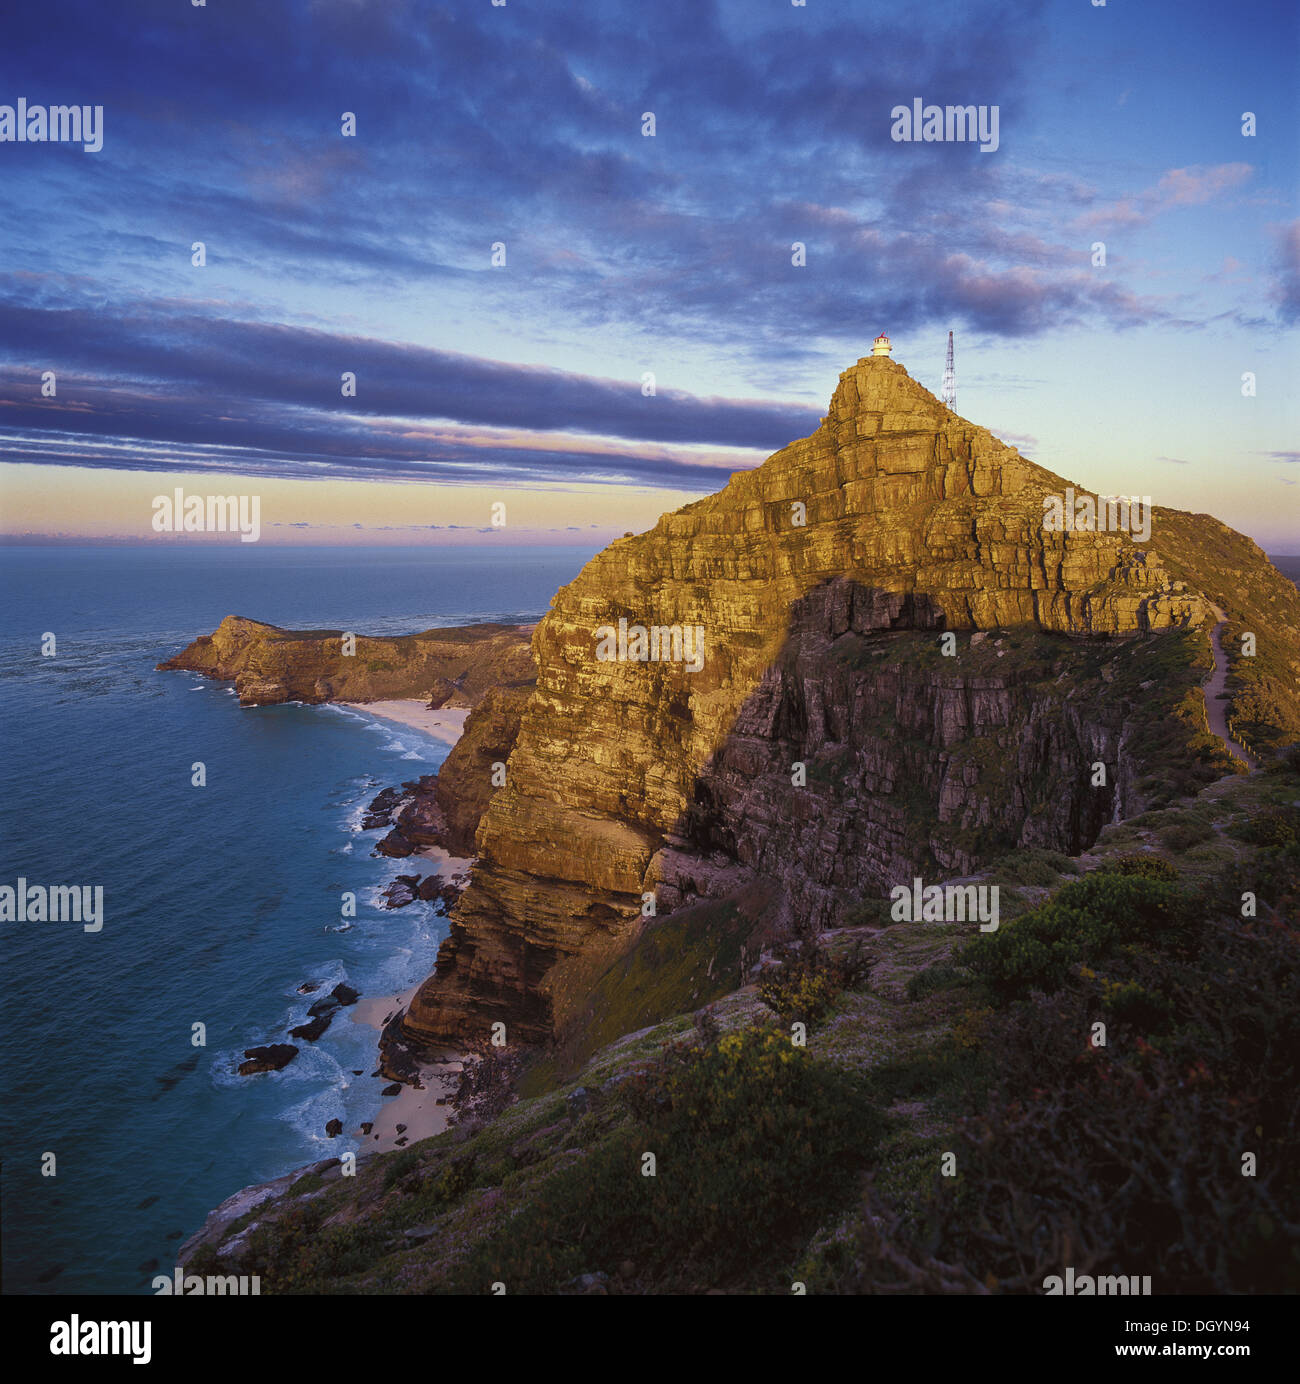 Towering Cliffs rise up against the ocean like stately sentinels at Cape Point - Stock Image